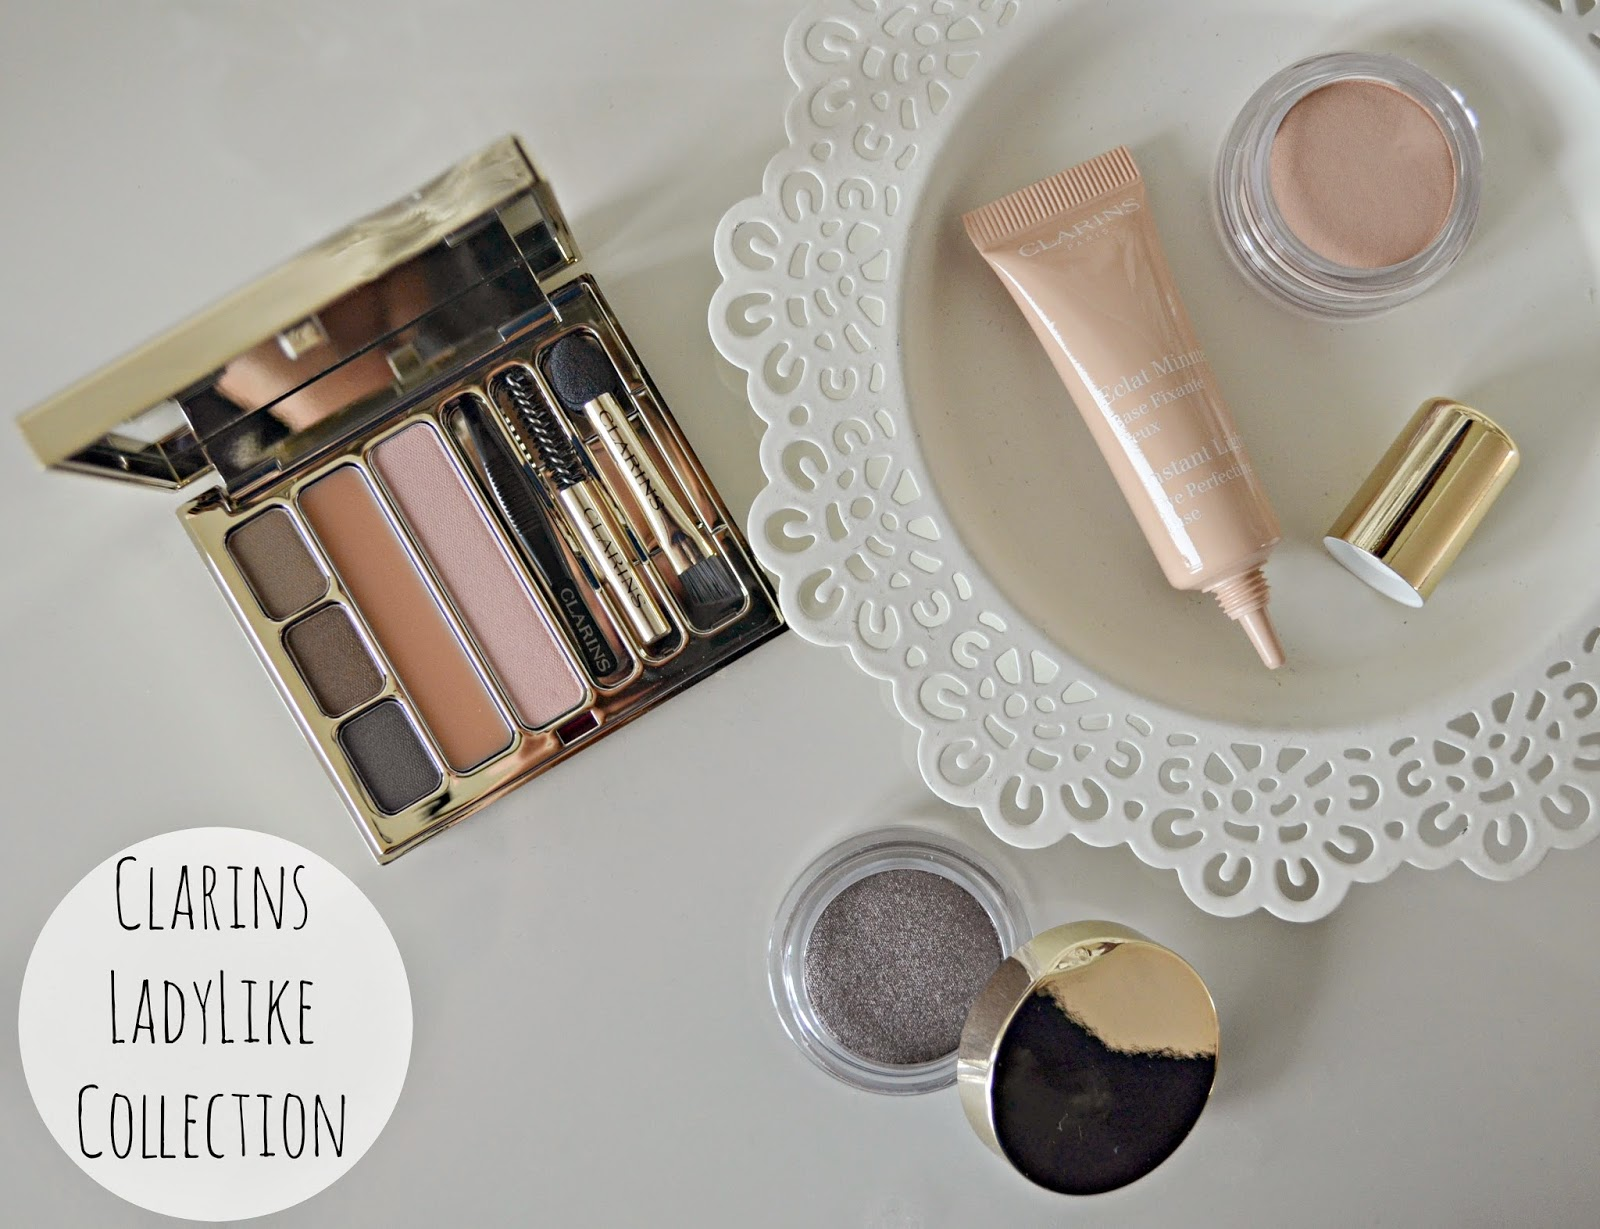 Clarins New LadyLike Collection